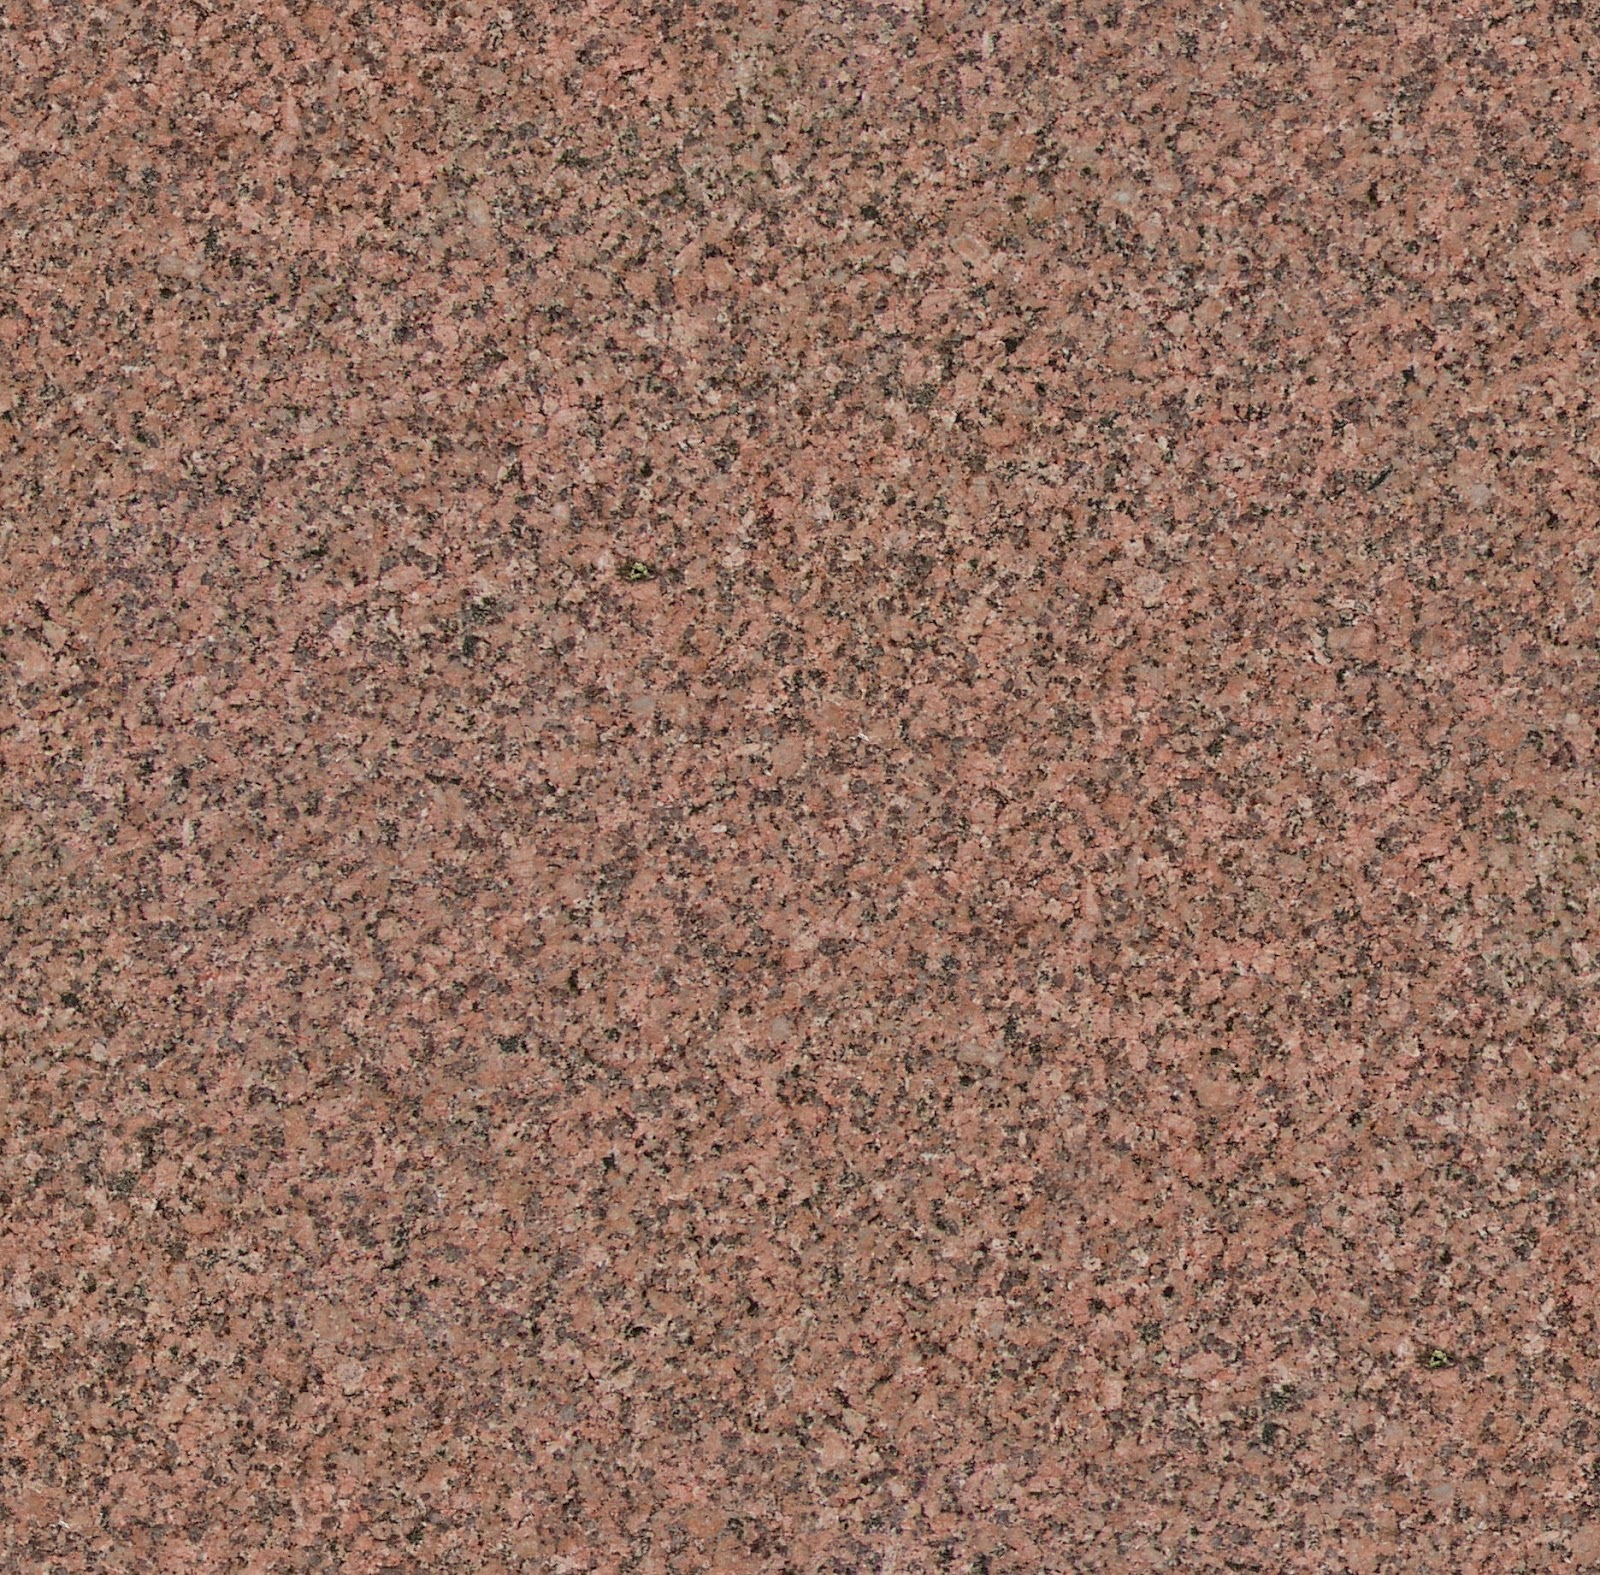 Red Granite Stone Seamless : High resolution seamless textures free marble